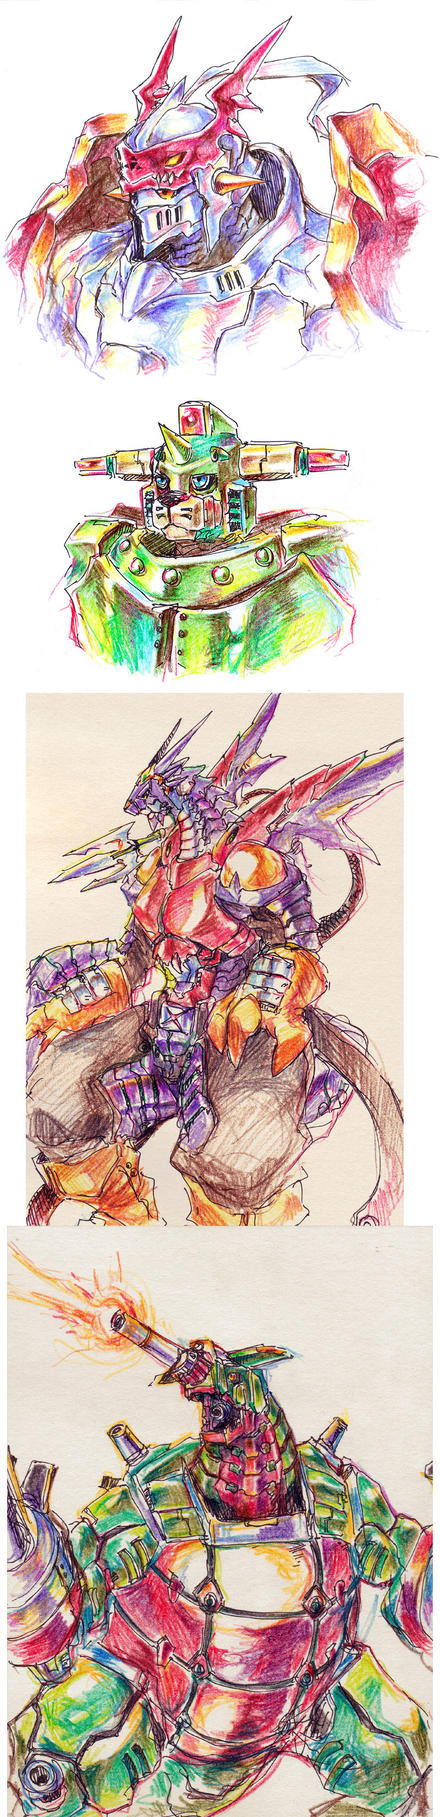 Colour pencil Digimon by Garmmon